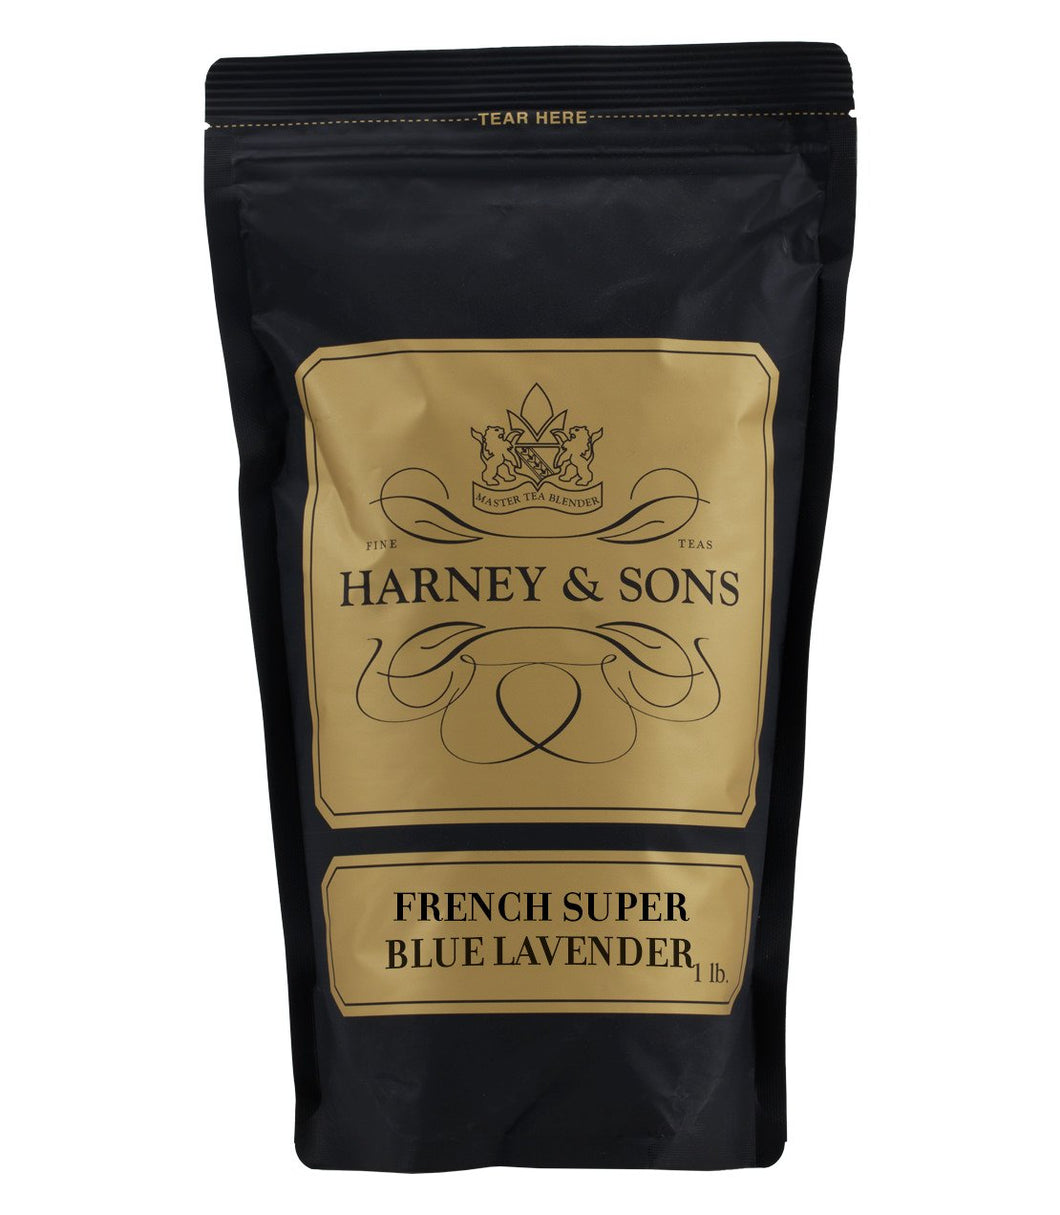 Harney & Sons - French Superblue Lavender